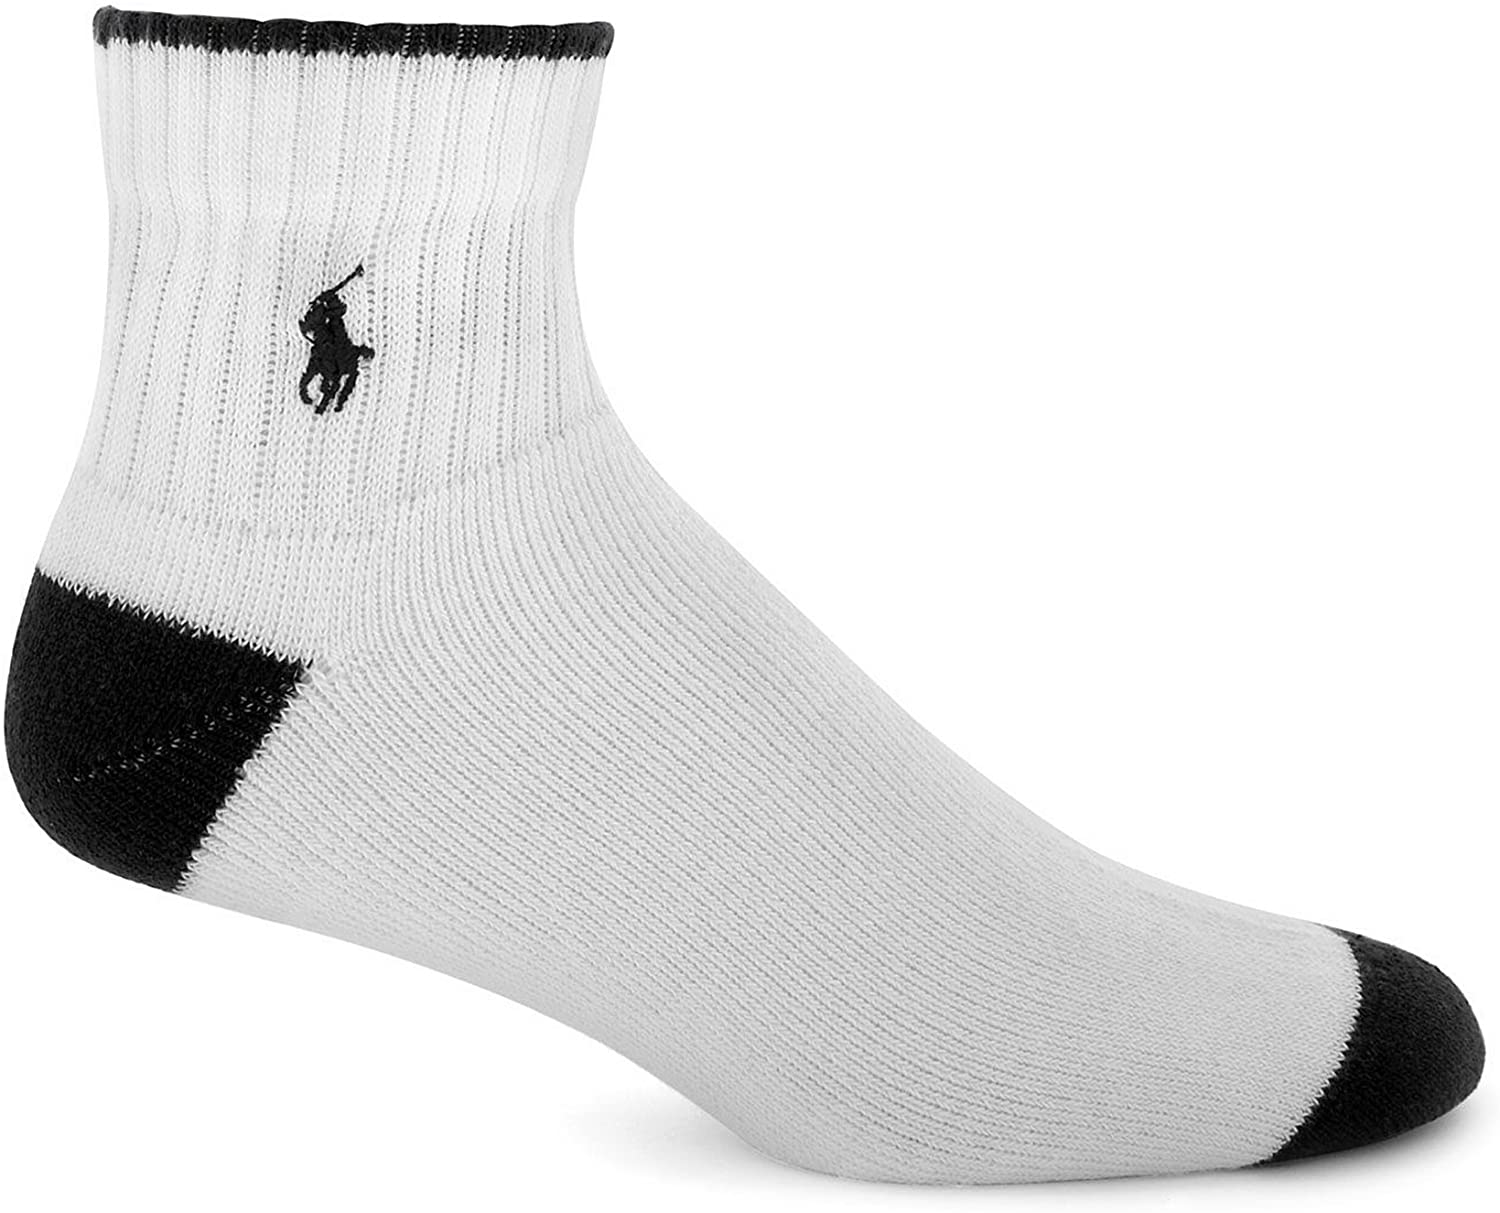 Polo Ralph Lauren Ankle Socks 3-Pack, One Size, White Assorted